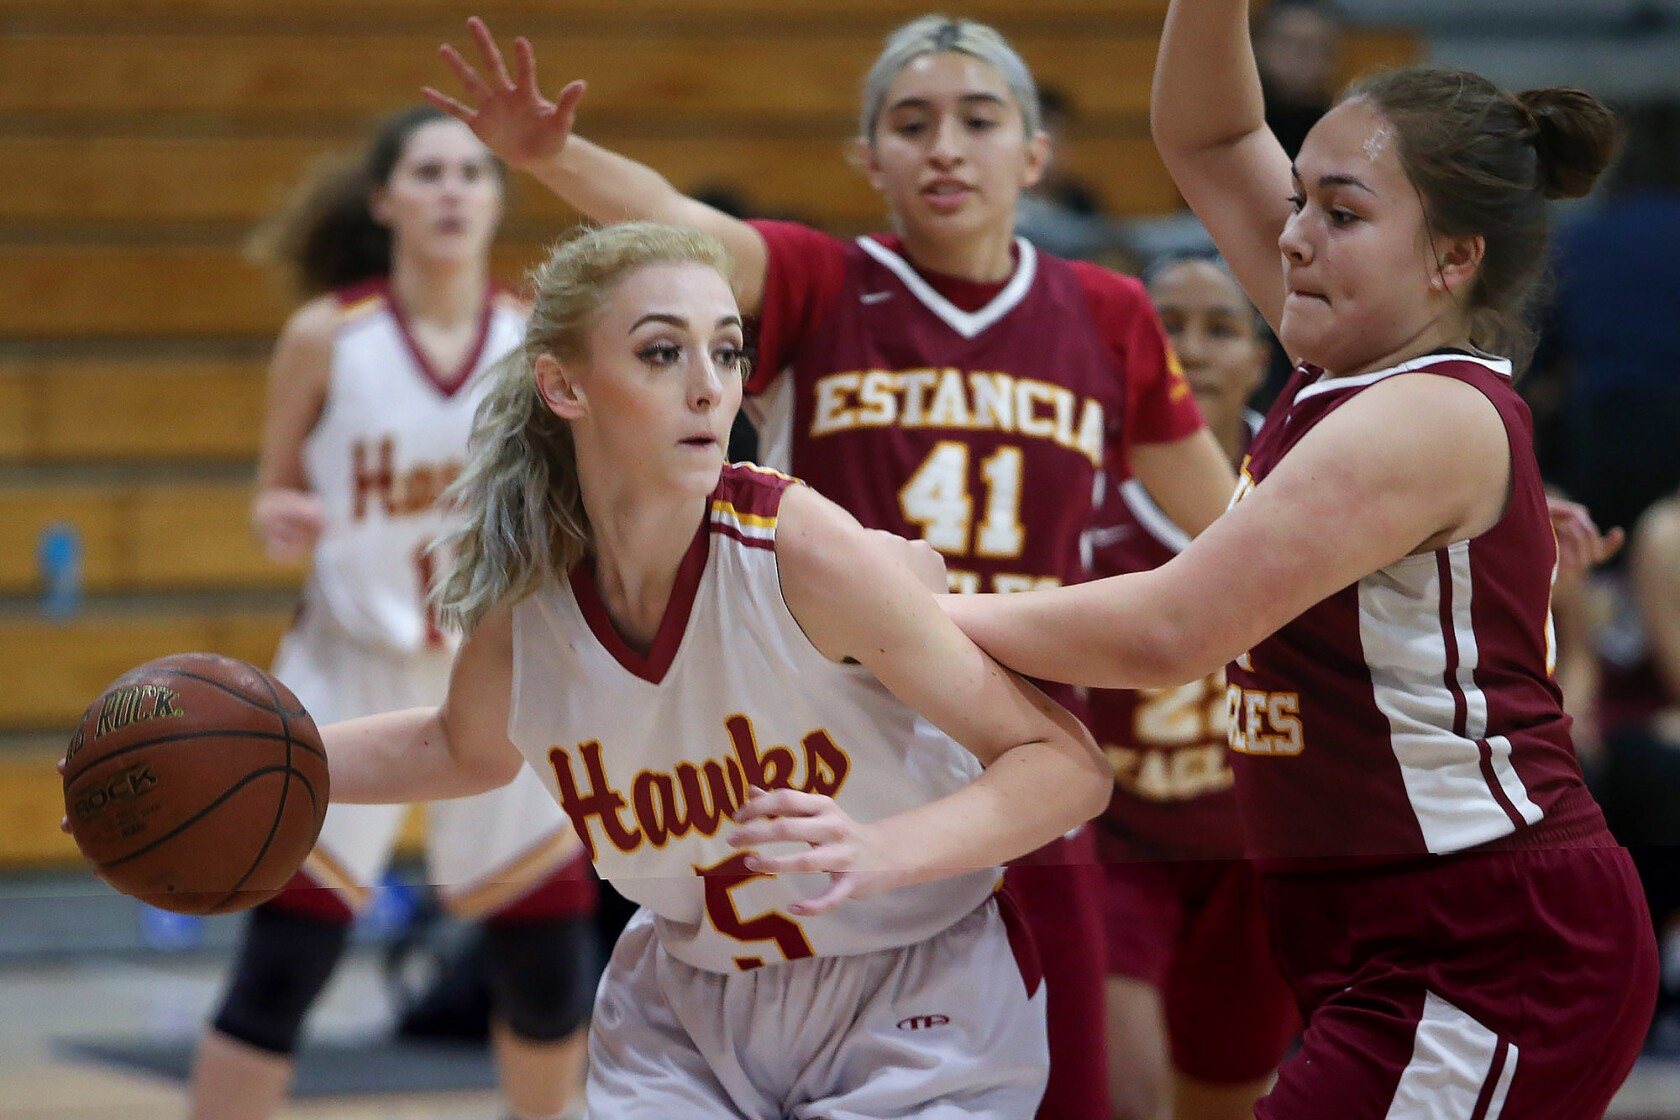 Estancia Christmas Basketball Tournament 2020 Helen Reynolds leads Ocean View girls' basketball past Estancia in